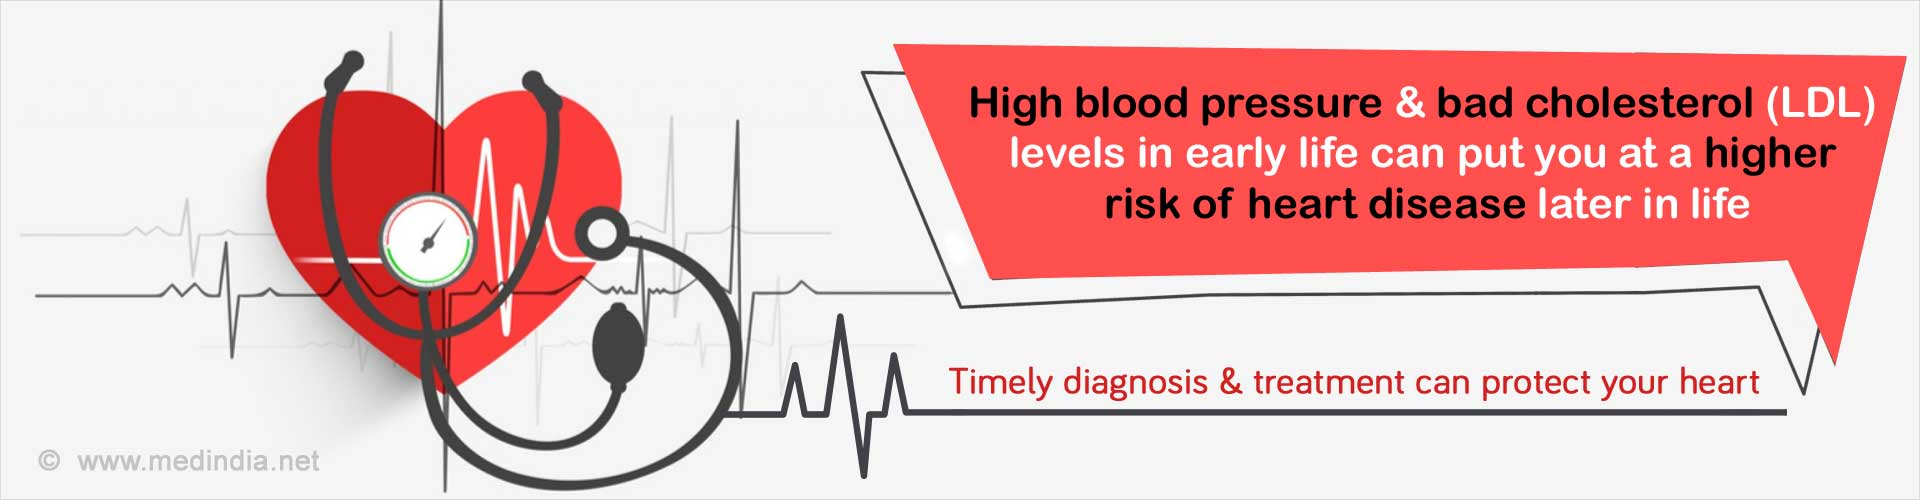 High blood pressure and bad cholesterol (LDL) levels in early life can put you at a higher risk of heart disease risk later in life. Timely diagnosis and treatment can protect your heart.